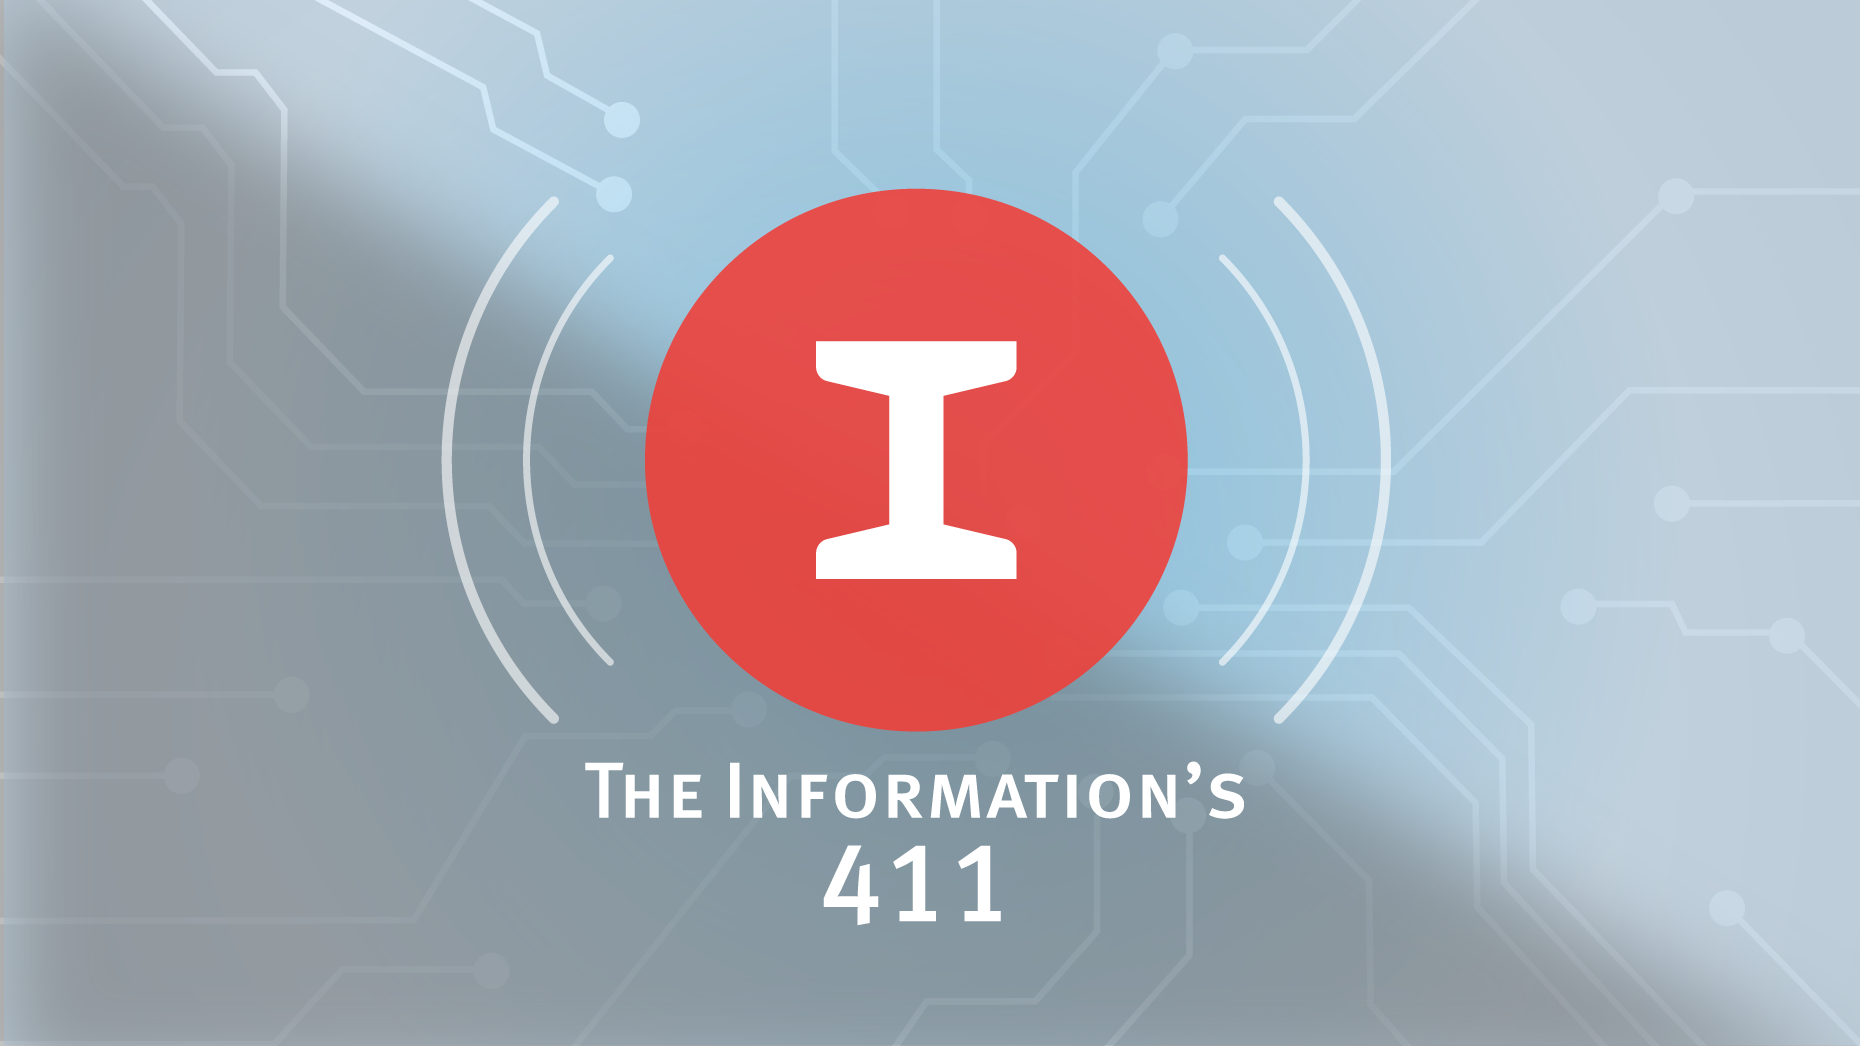 The Information's 411 — Social to the Left of Me, Media to the Right